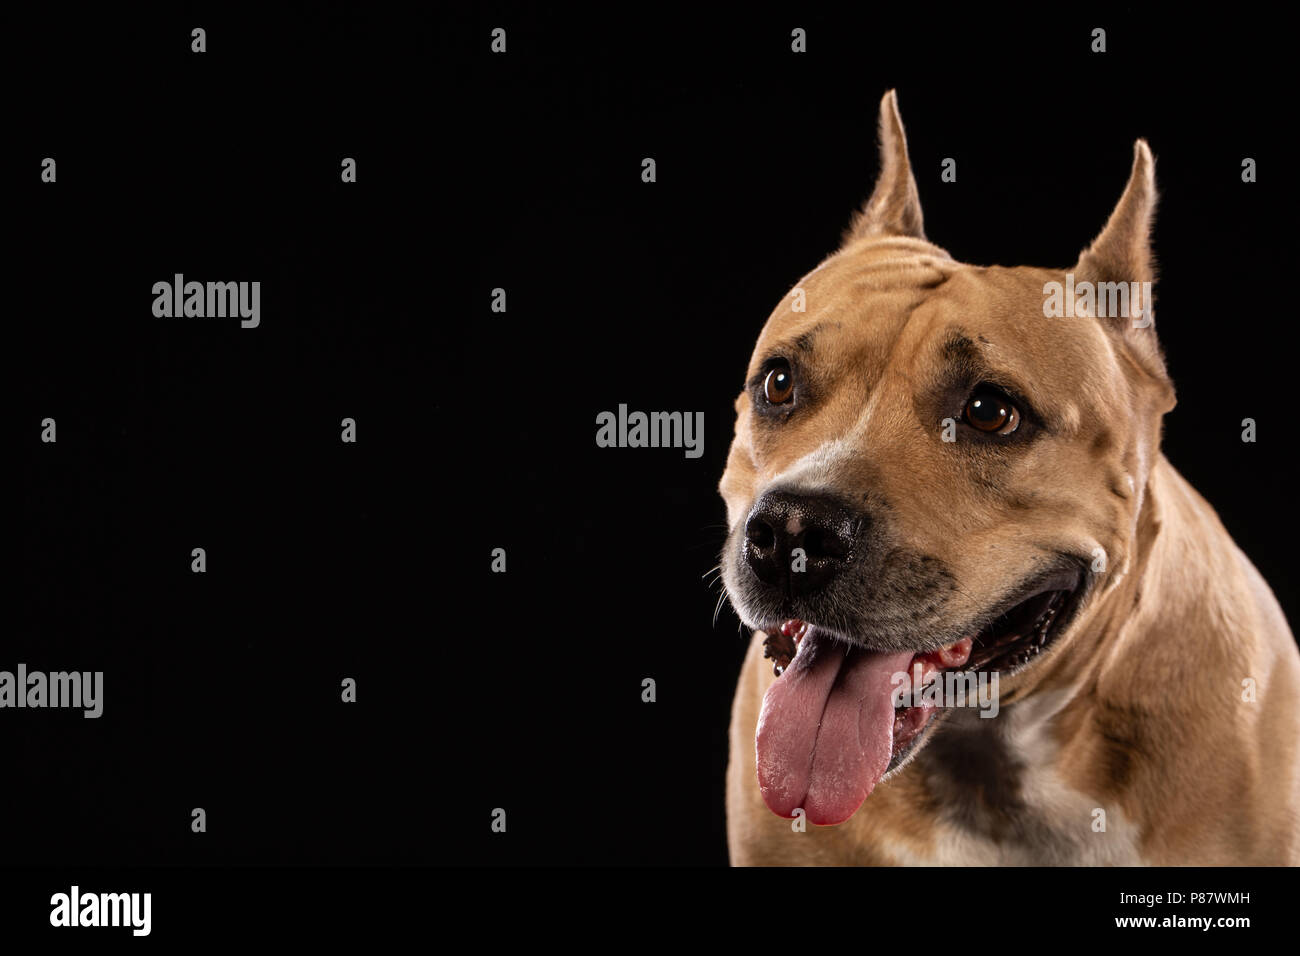 Red American pit bull terrier on black background. Copy space - Stock Image